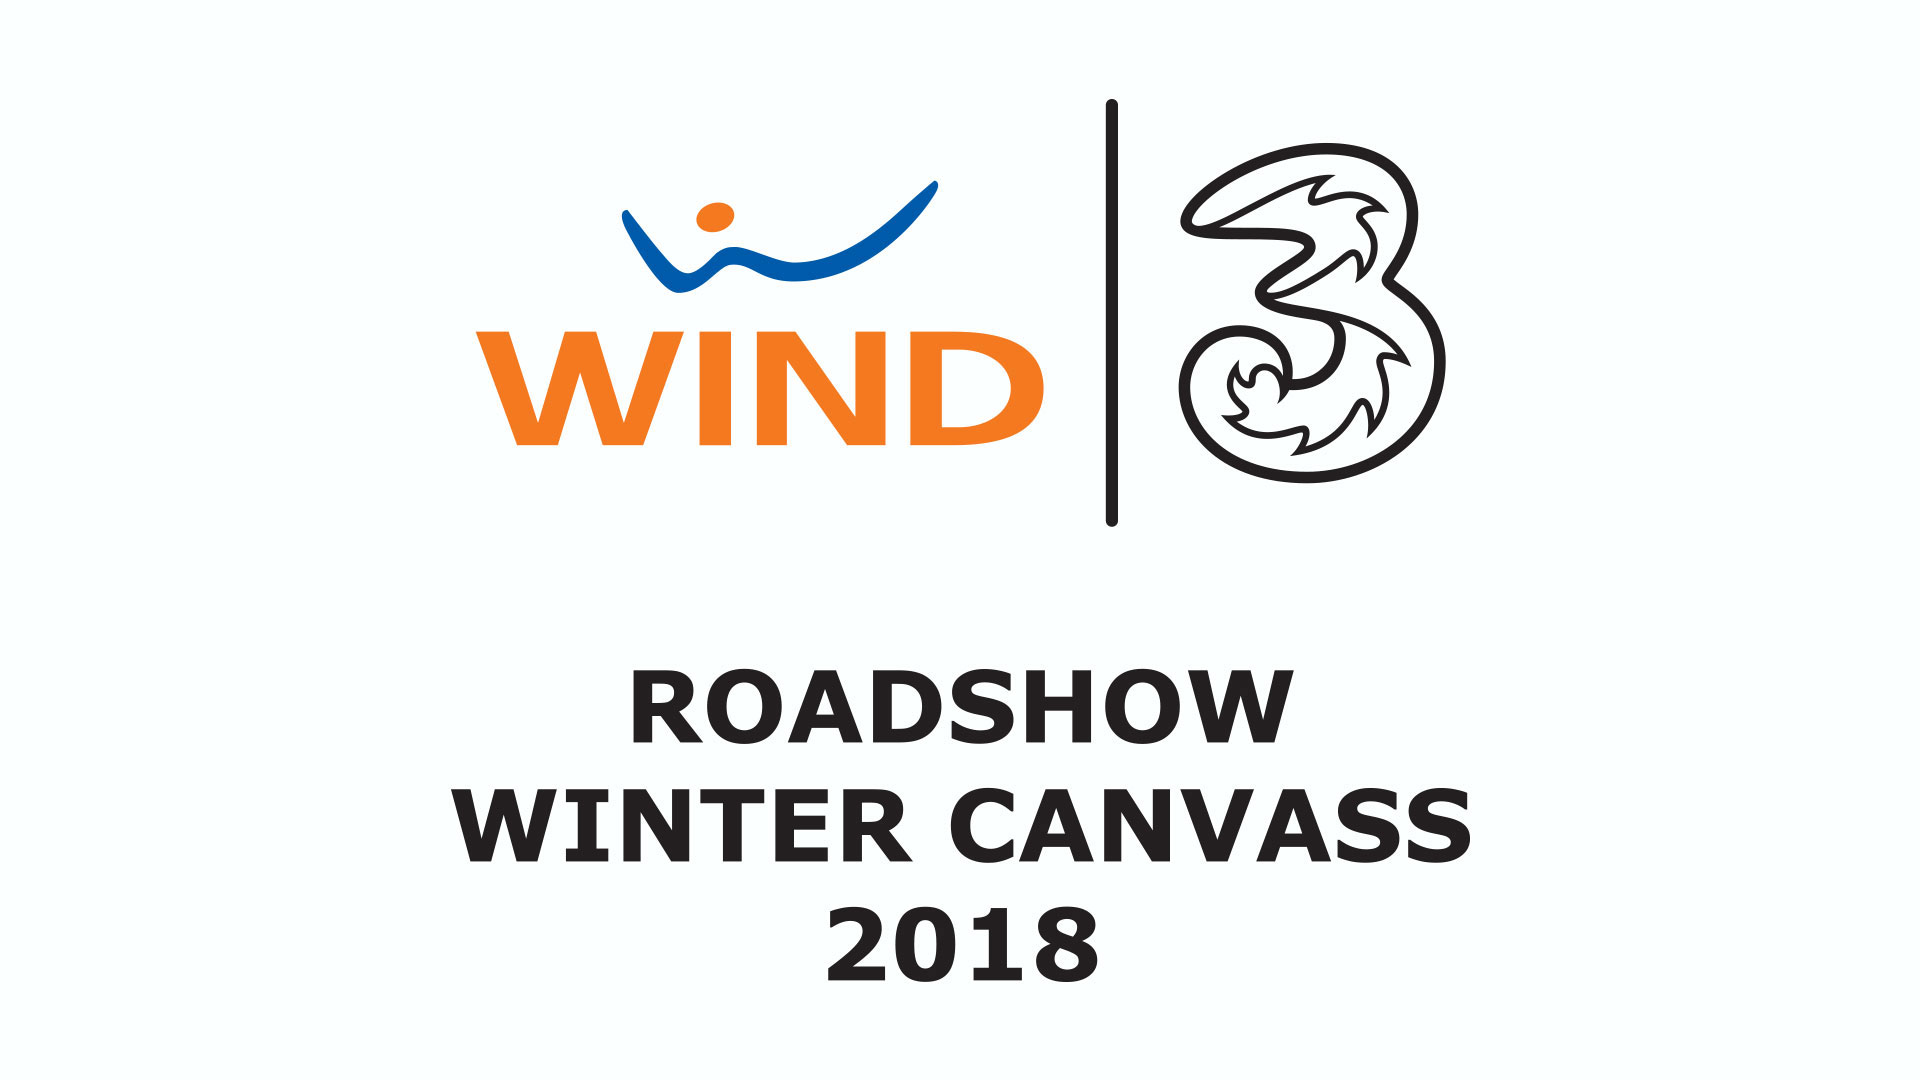 Wind | 3 Roadshow Winter Canvass 2018